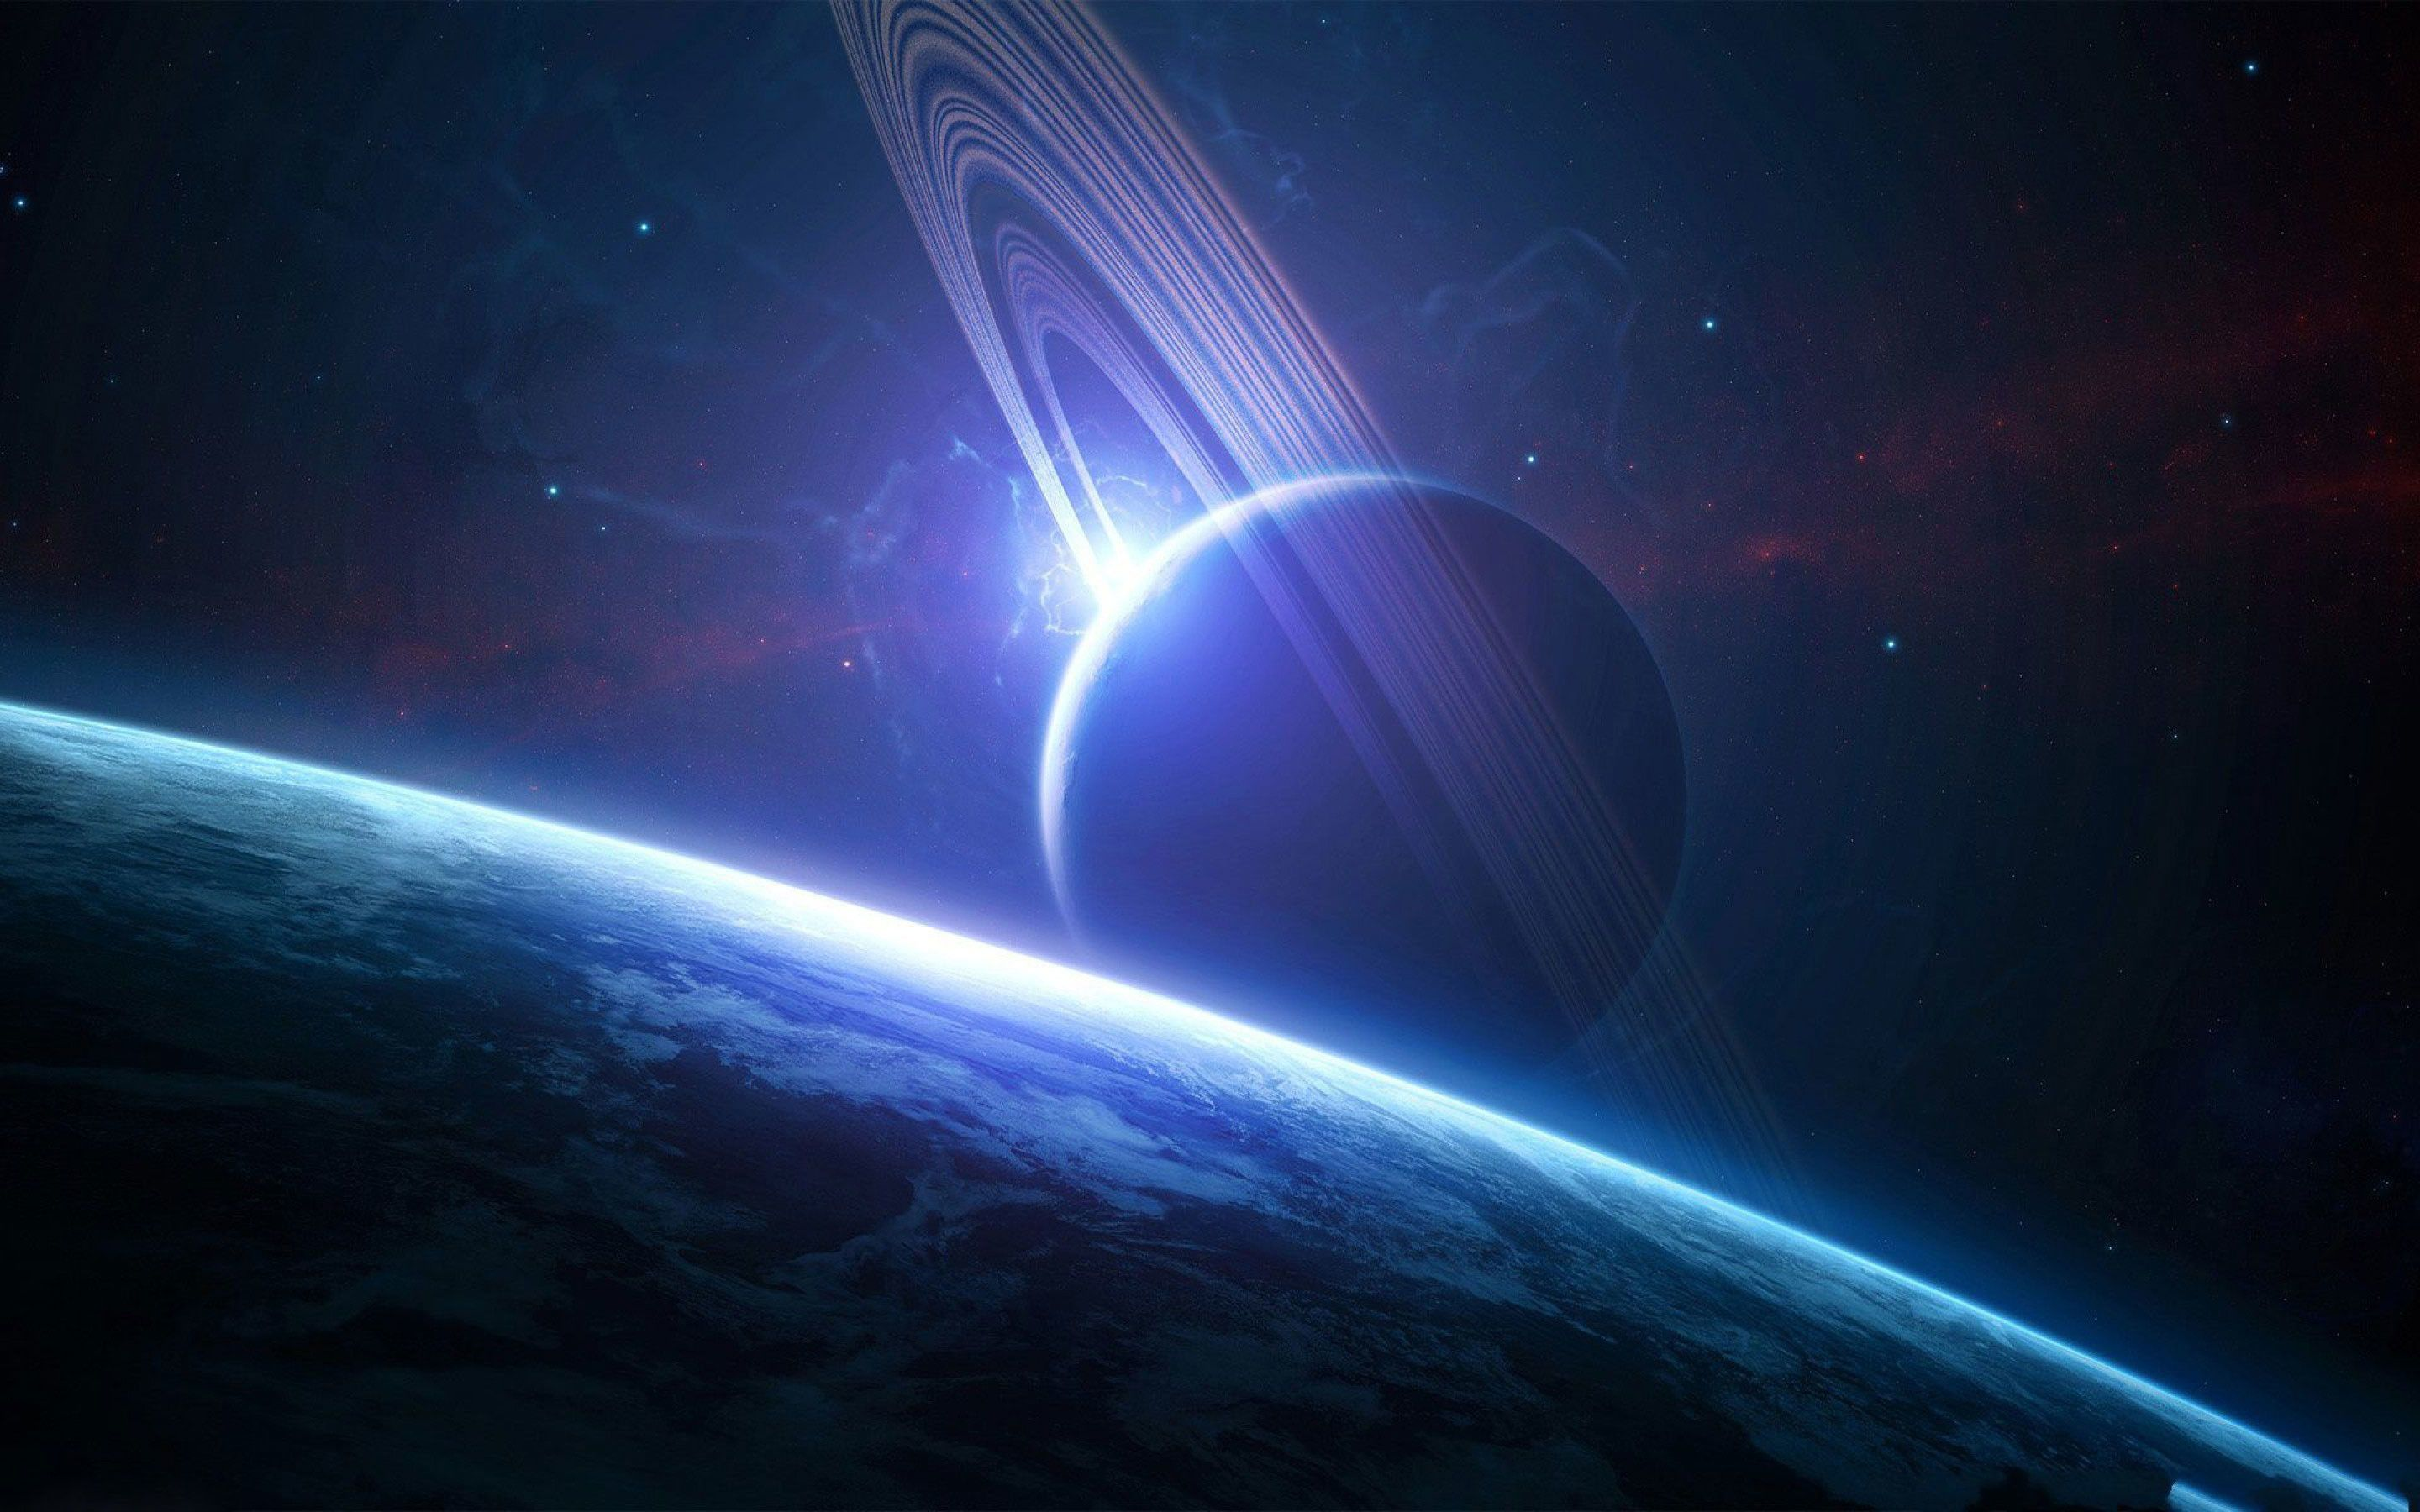 Epic Space Collection See All Wallpapers Wallpapers Background Space In 2020 Planets Wallpaper Outer Space Wallpaper Wallpaper Space